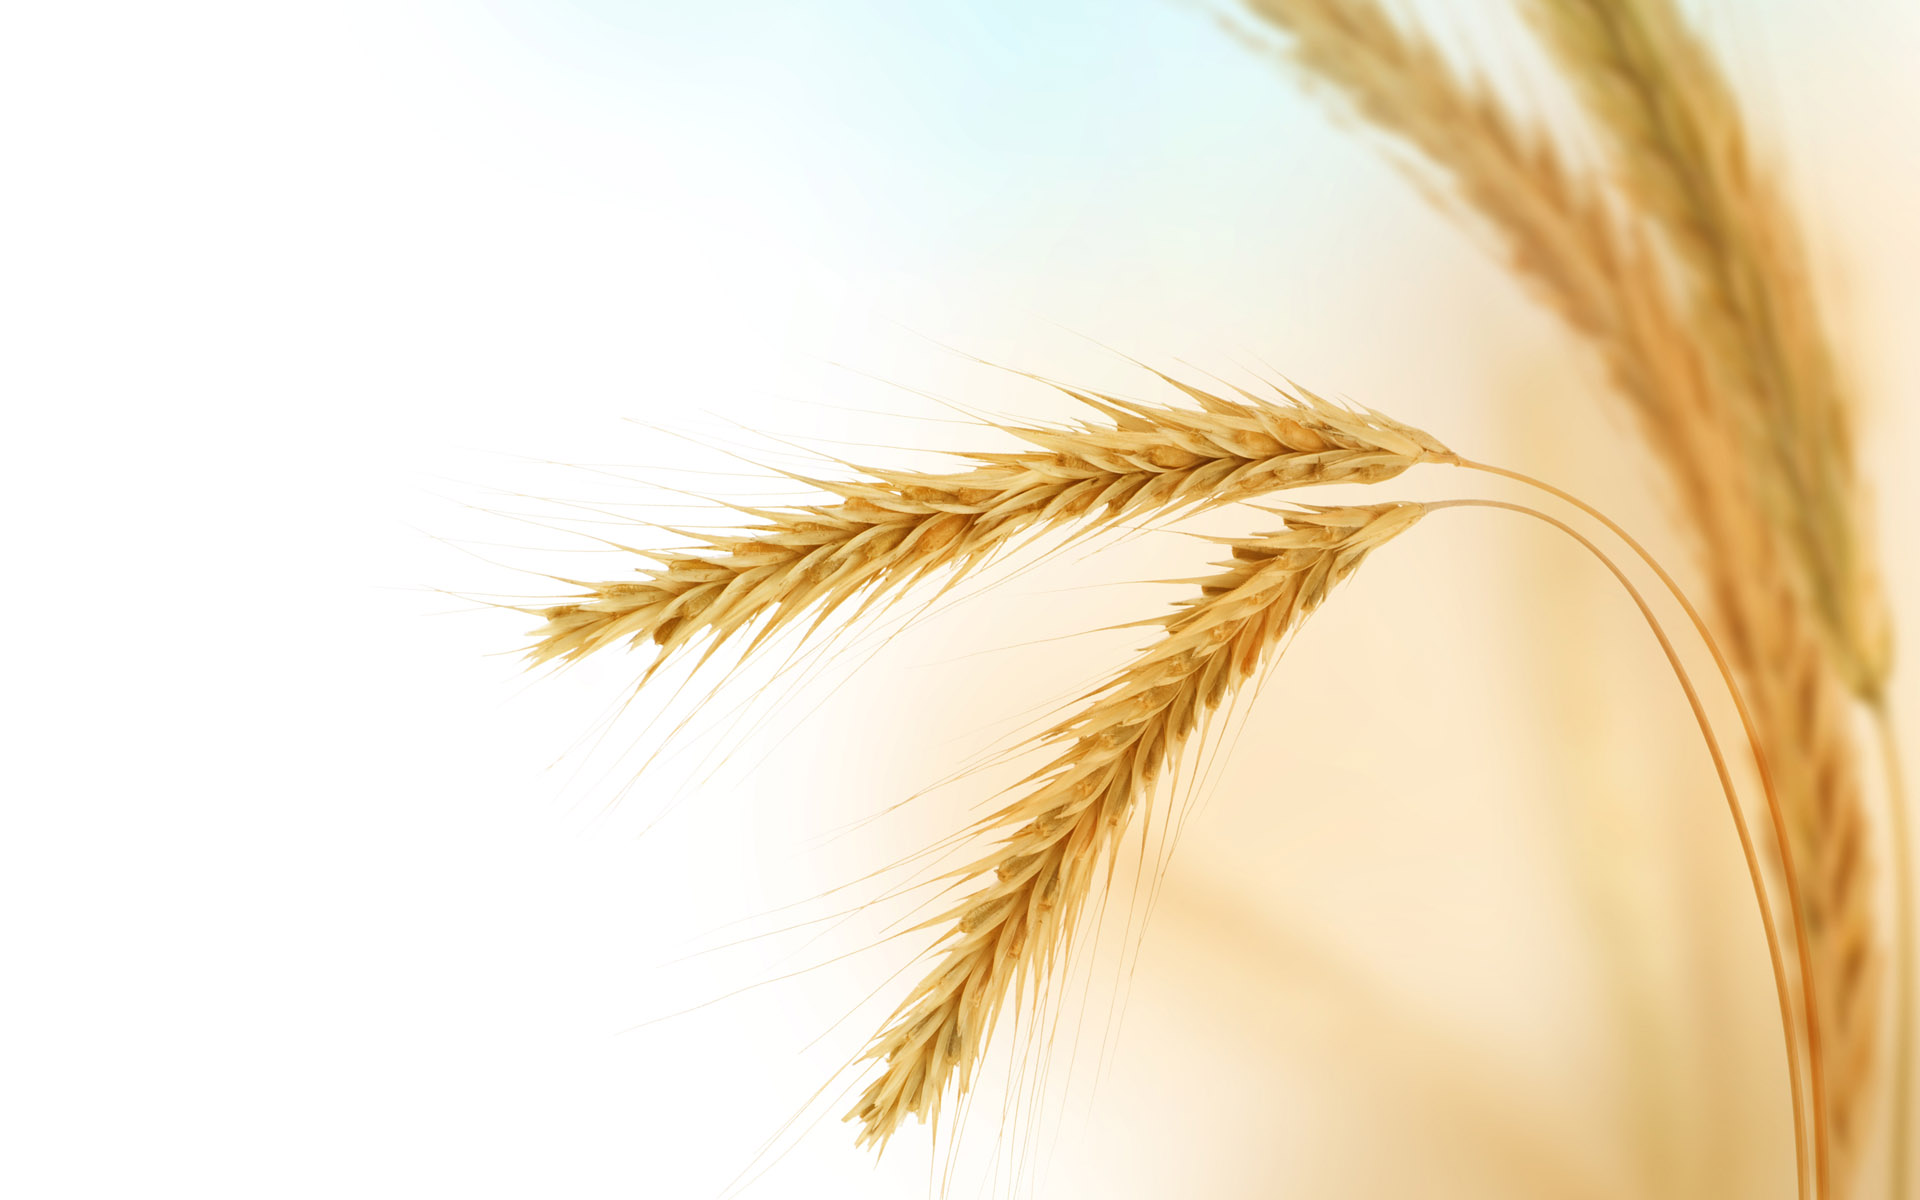 HD wheat crop material 8934